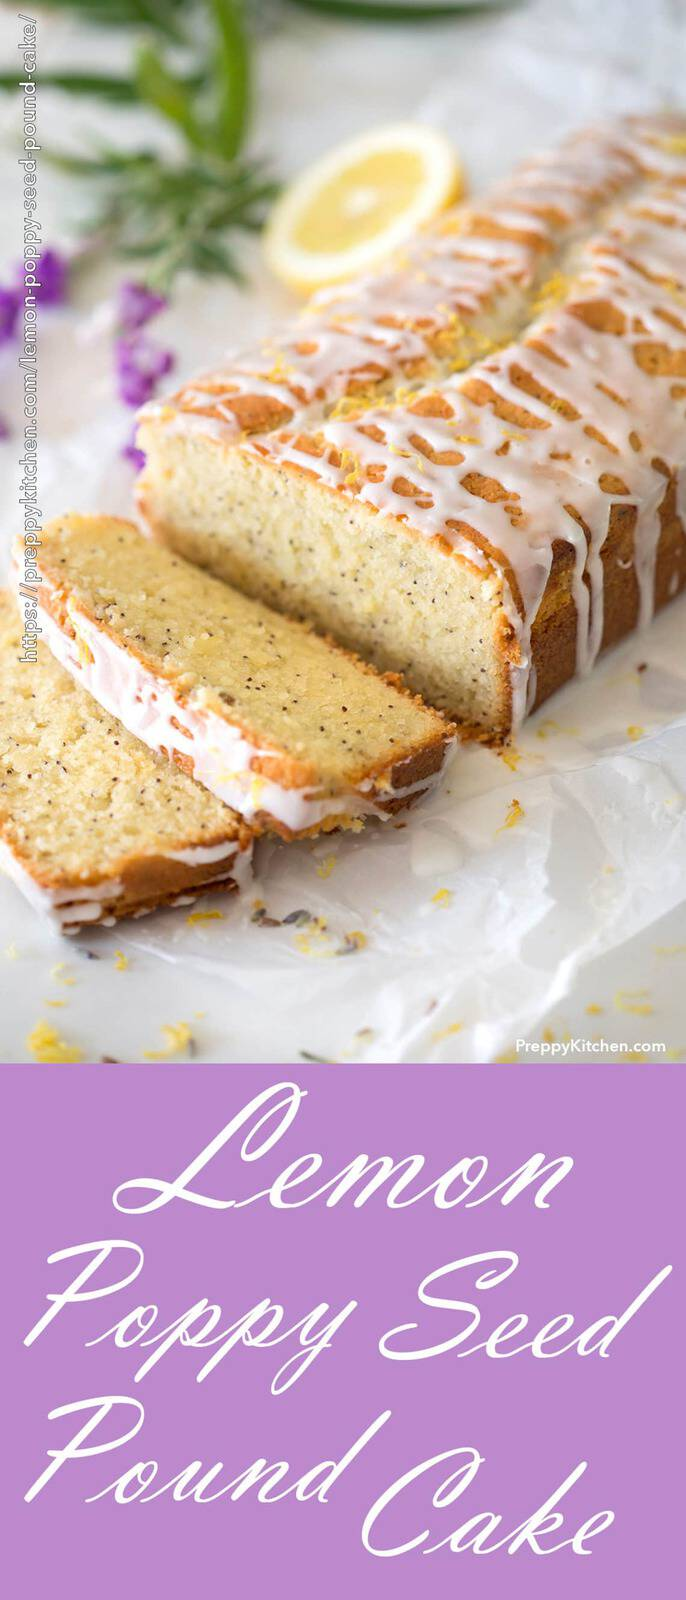 A cut lemon pound cake with white icing and lemons in the background